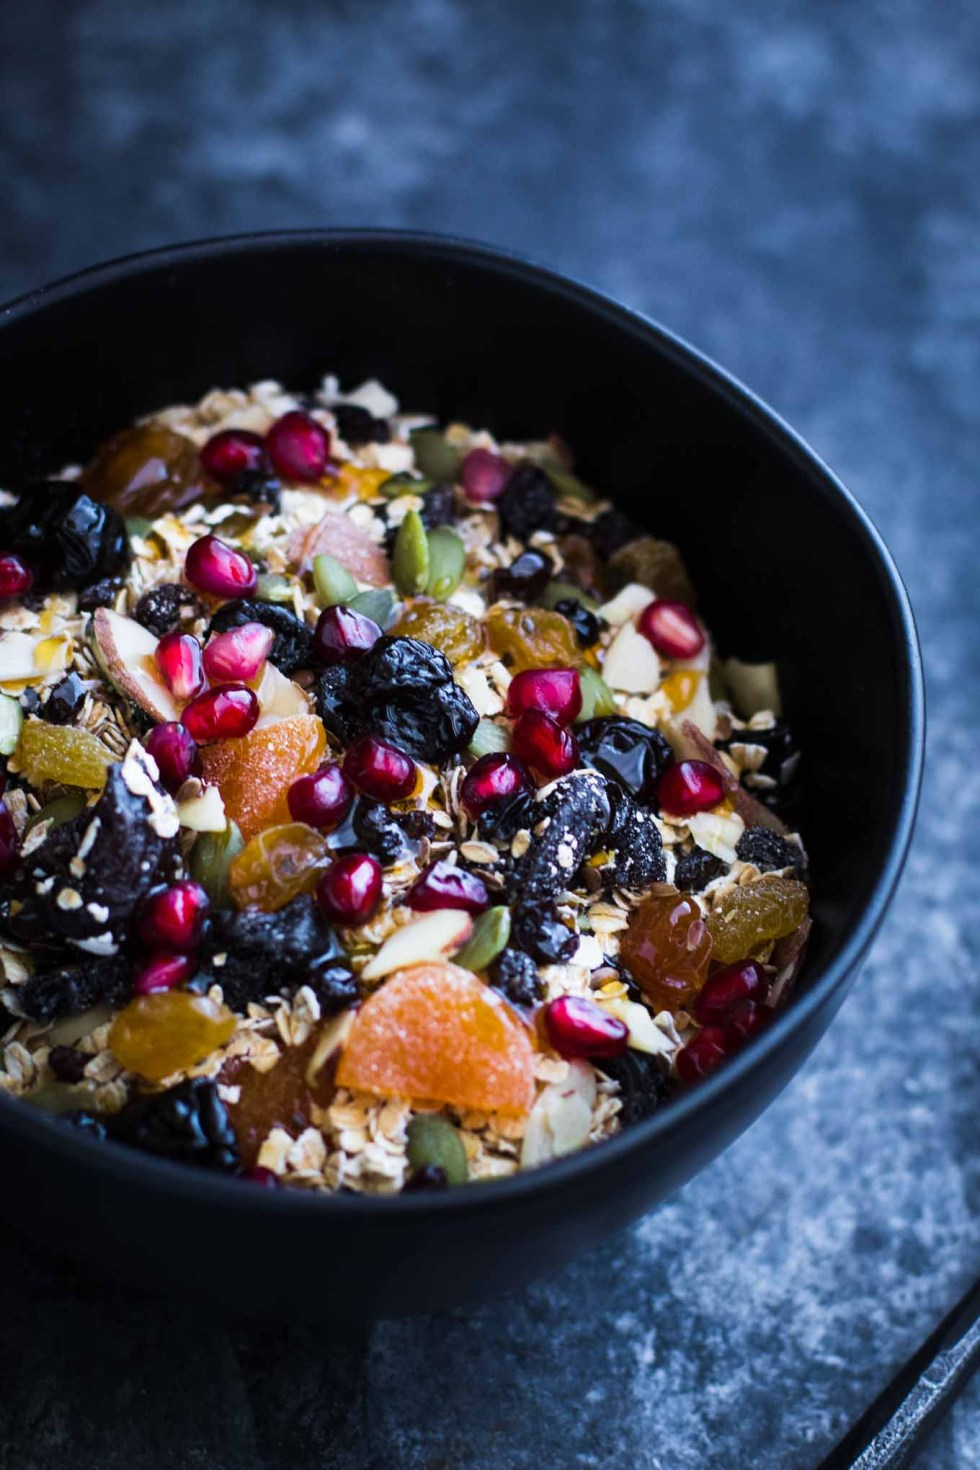 Homemade muesli filled with superfoods! This healthy breakfast is stuffed full of antioxidants, omegas